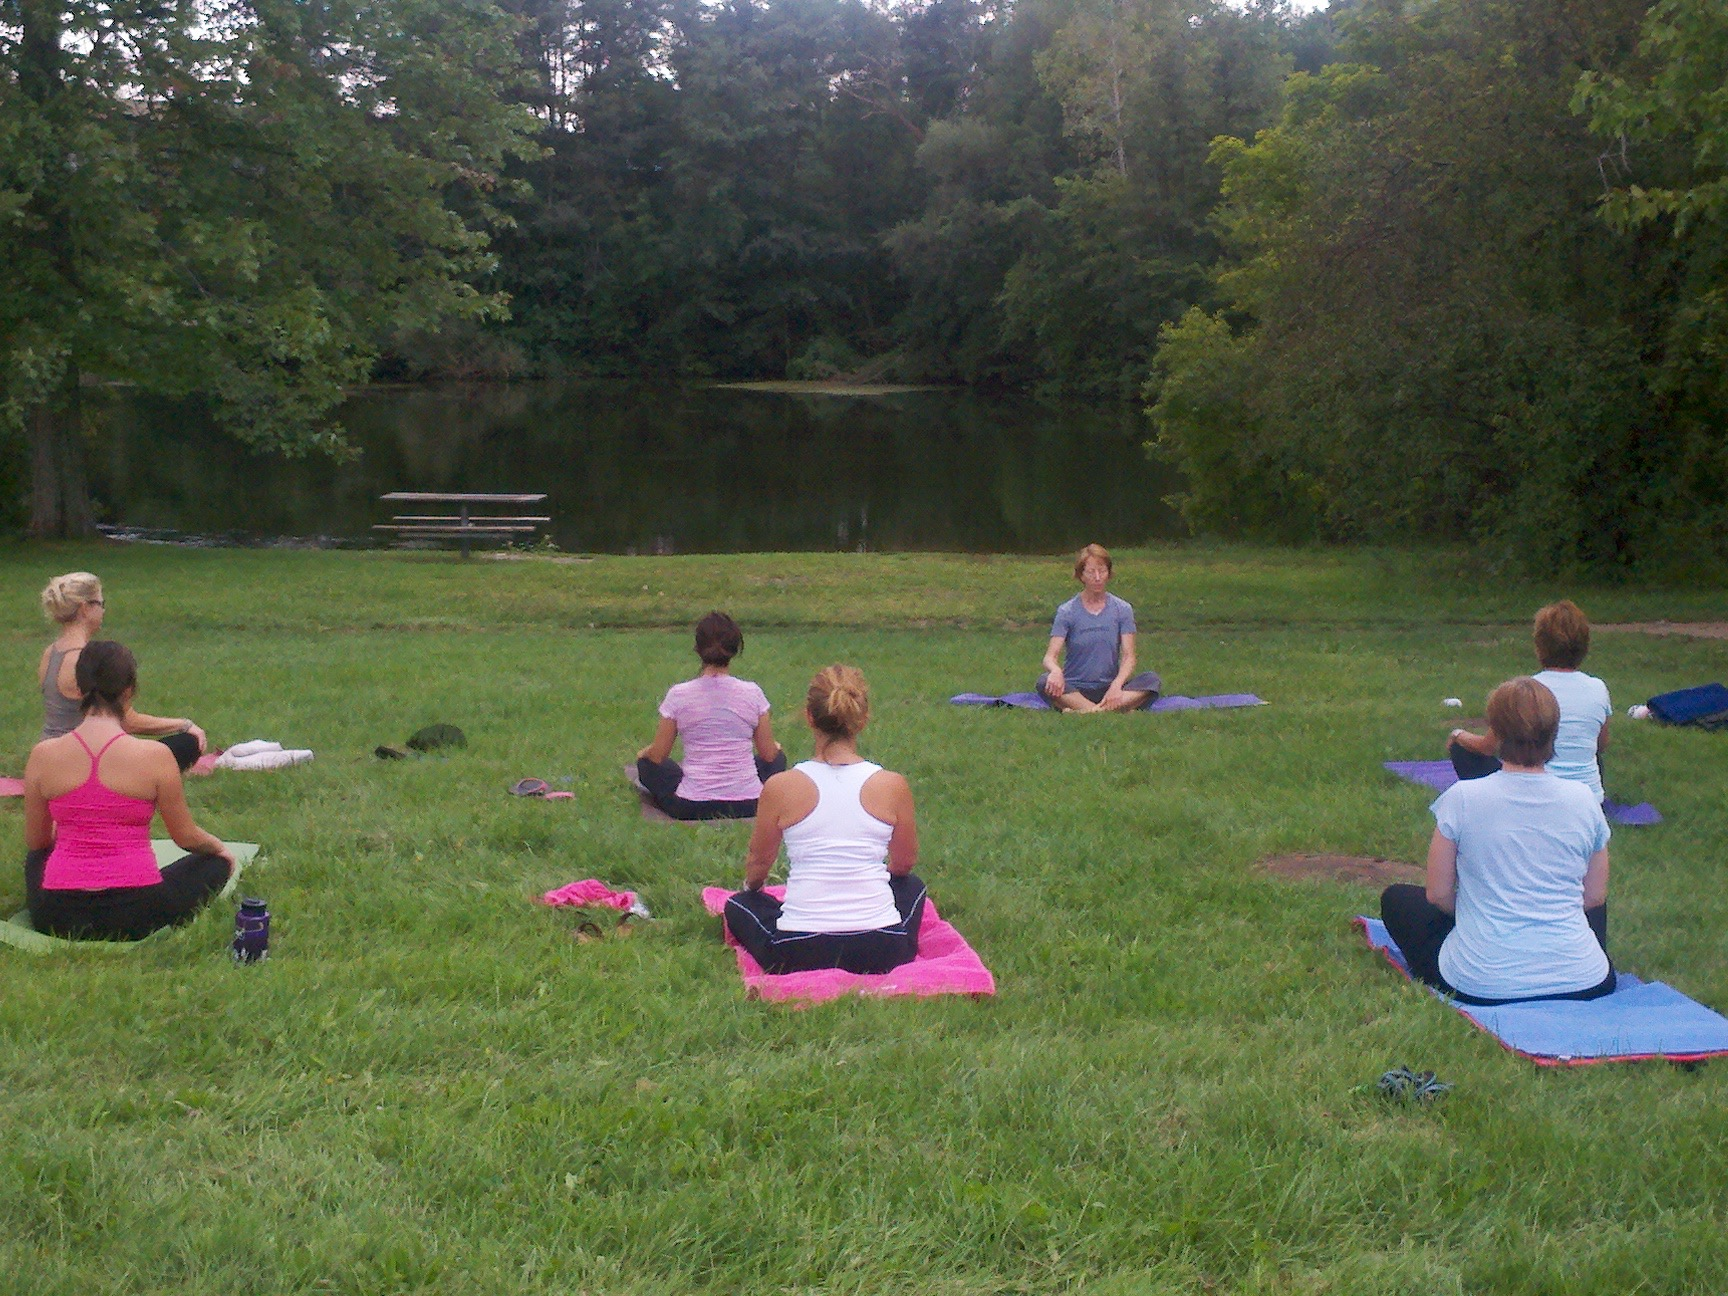 Image of Lisa Hesse and Yogis at Bandemere Park in Ann Arbor